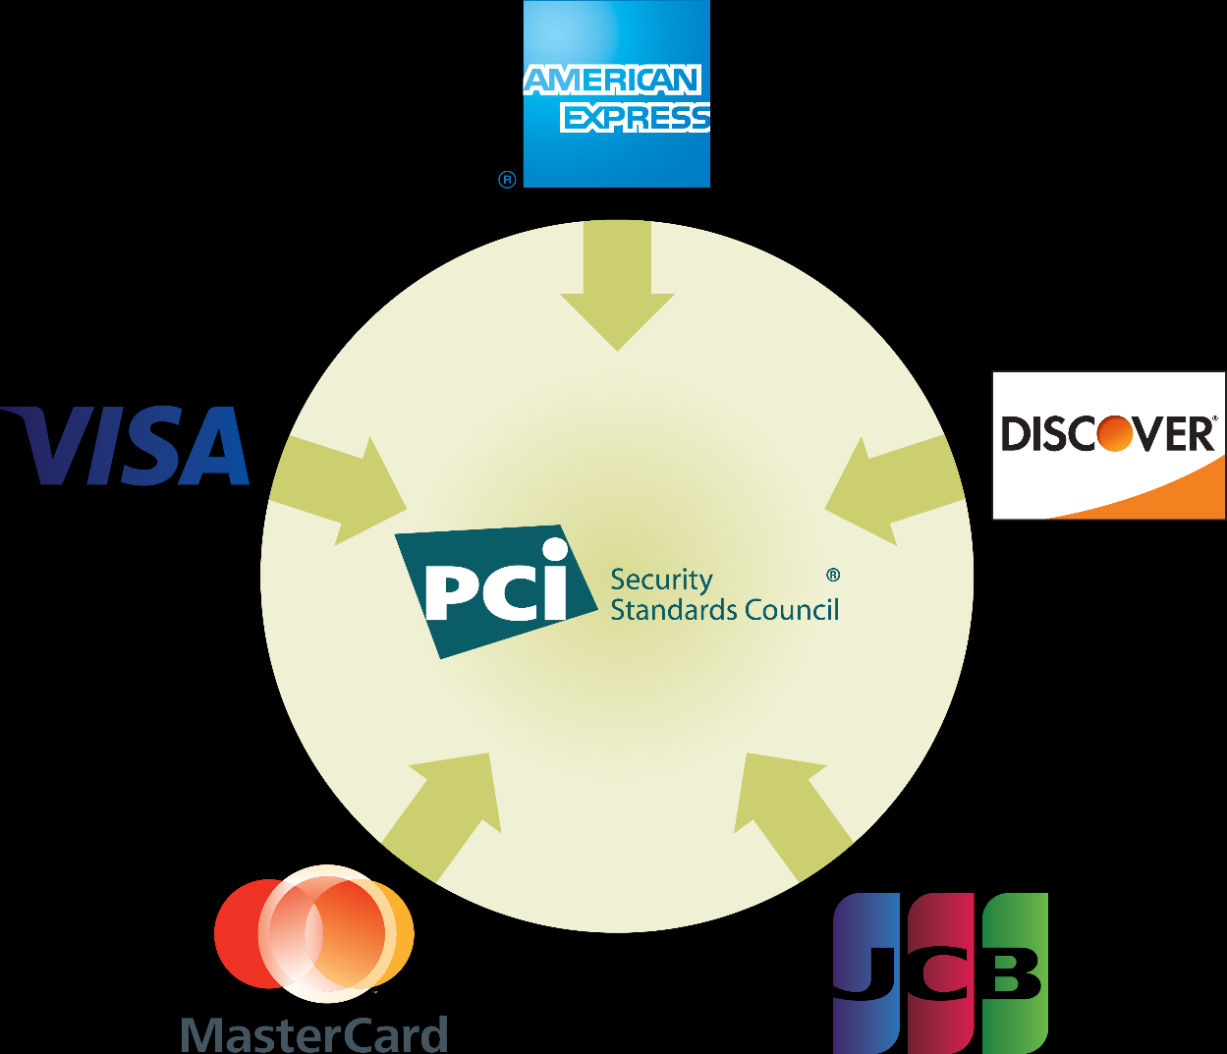 About the PCI Council Founded in 2006 - Guiding open standards